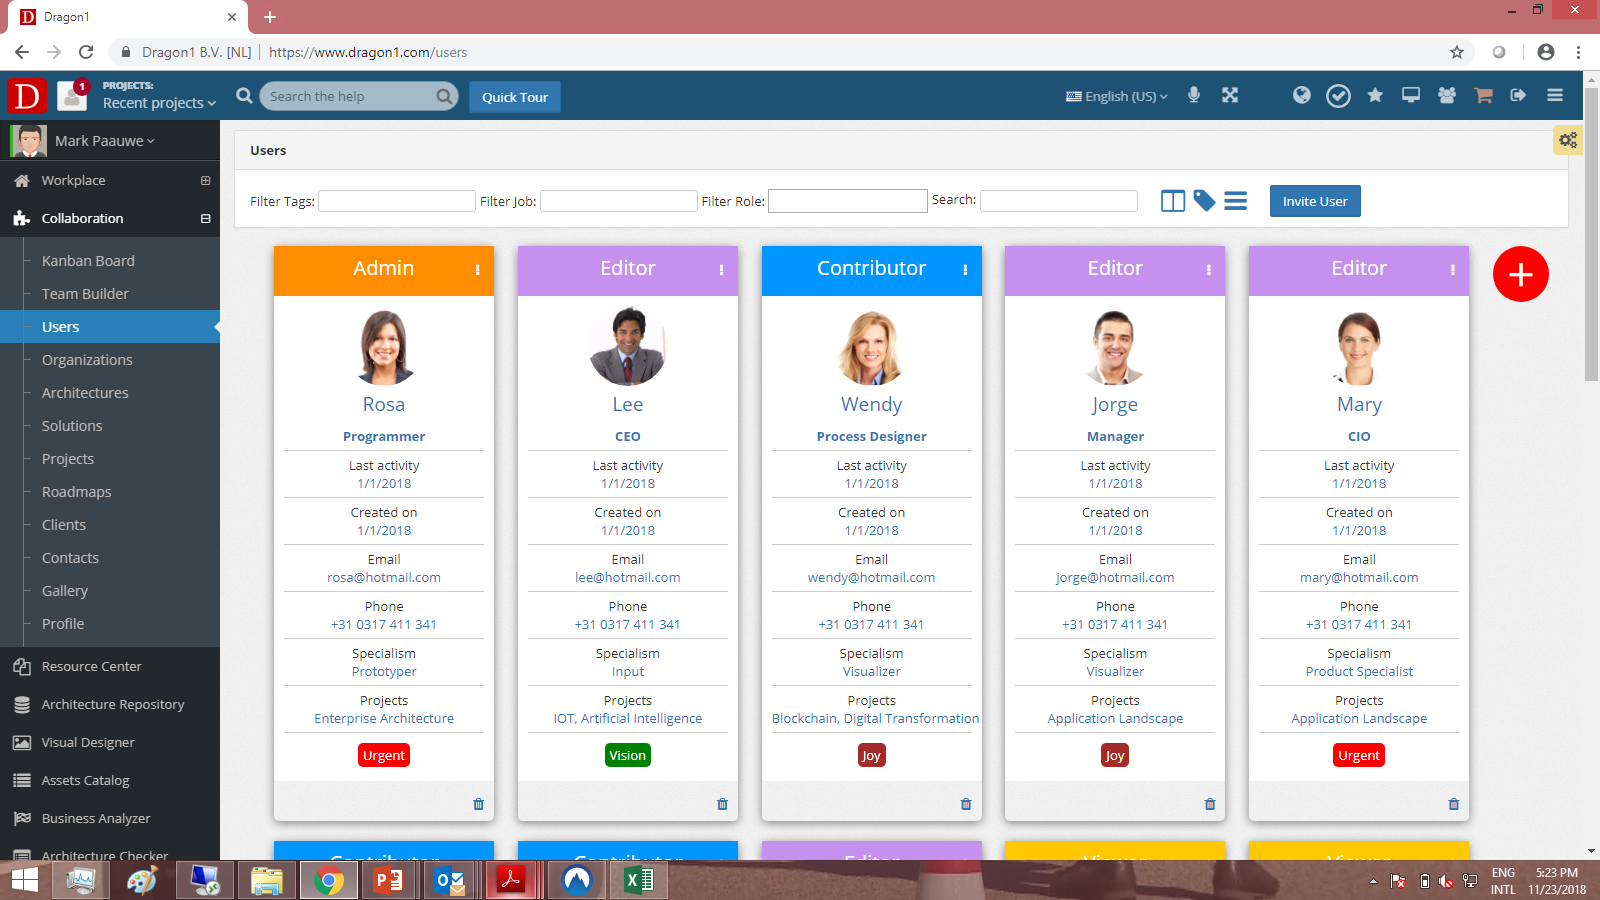 Users Collaboration View